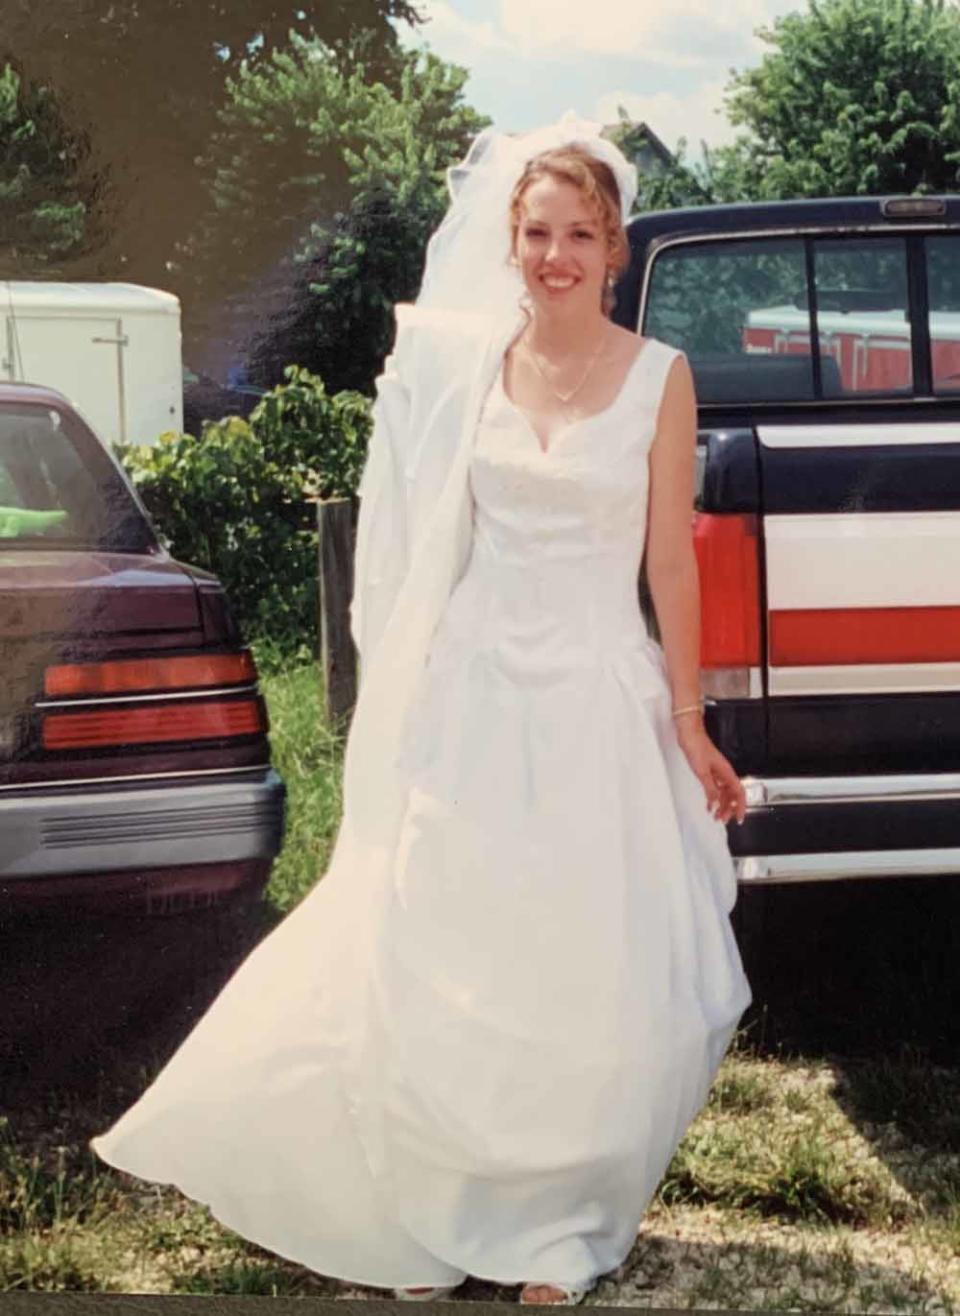 Kendra Blair on her wedding day when she was 19. (PA Real Life/Collect)